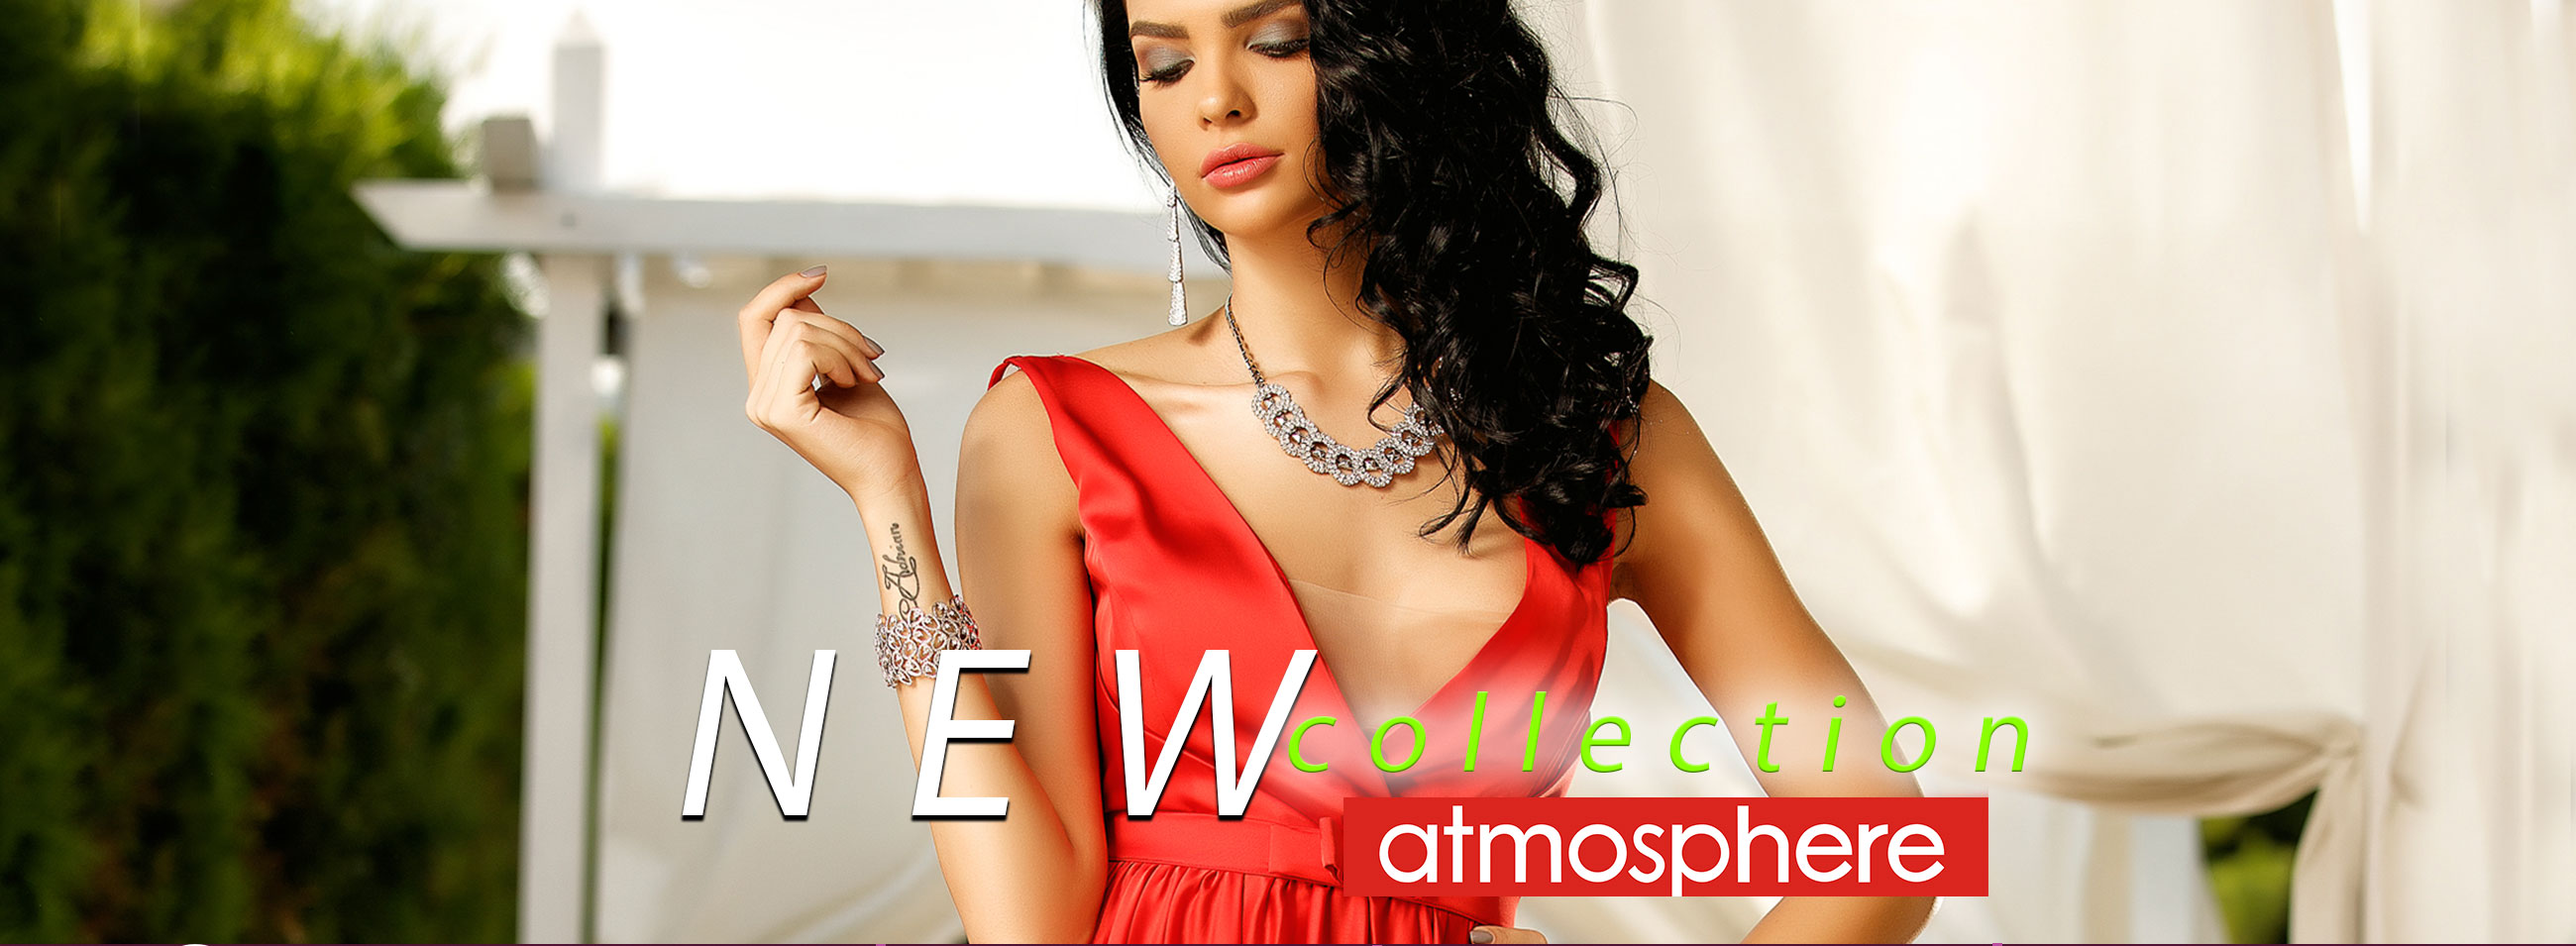 Atmosphere fashion